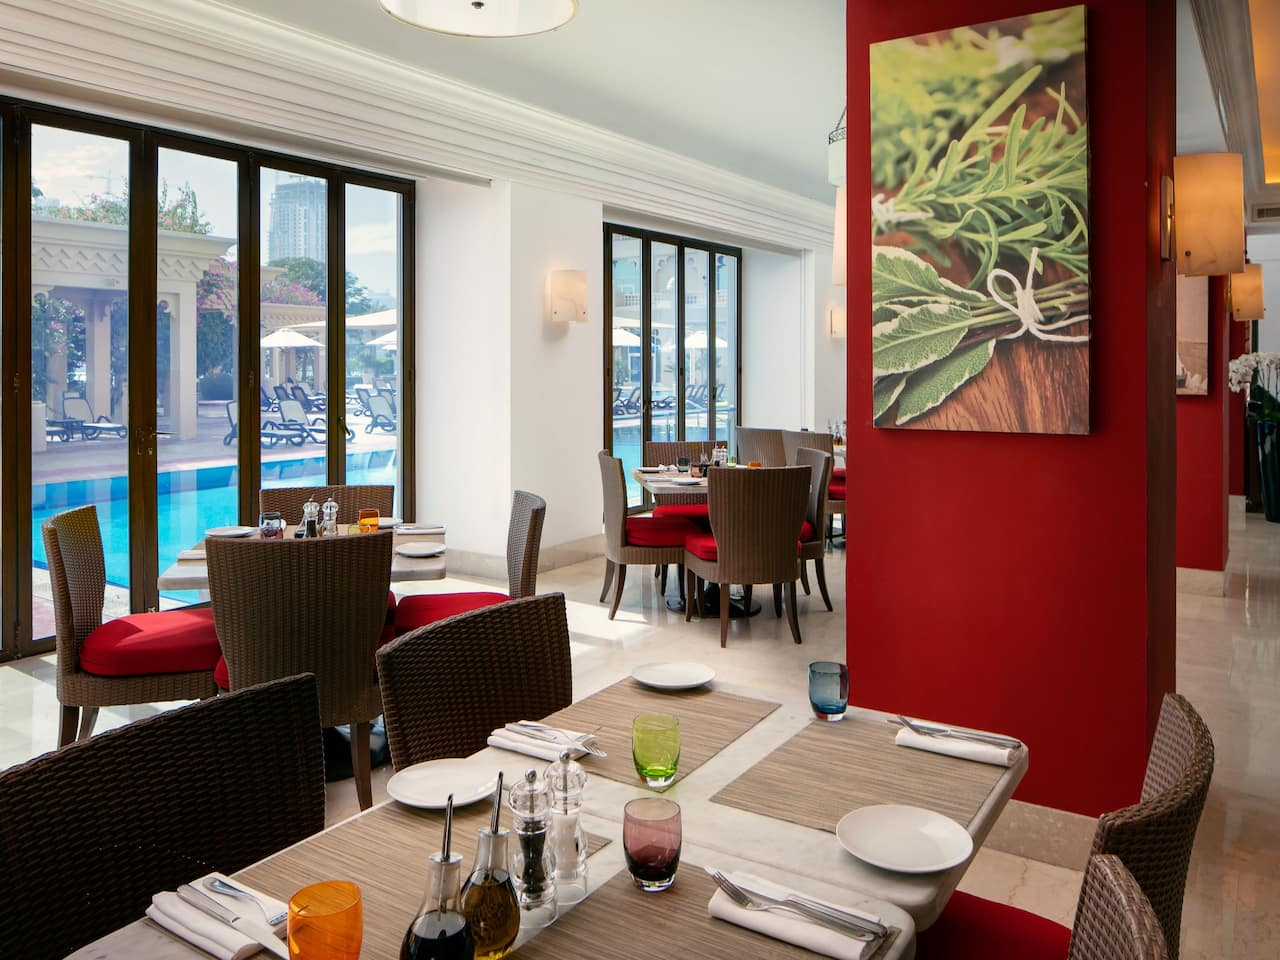 Italian Restaurant in 5 Star Hotel | Grand Hyatt Doha Hotel & Villas